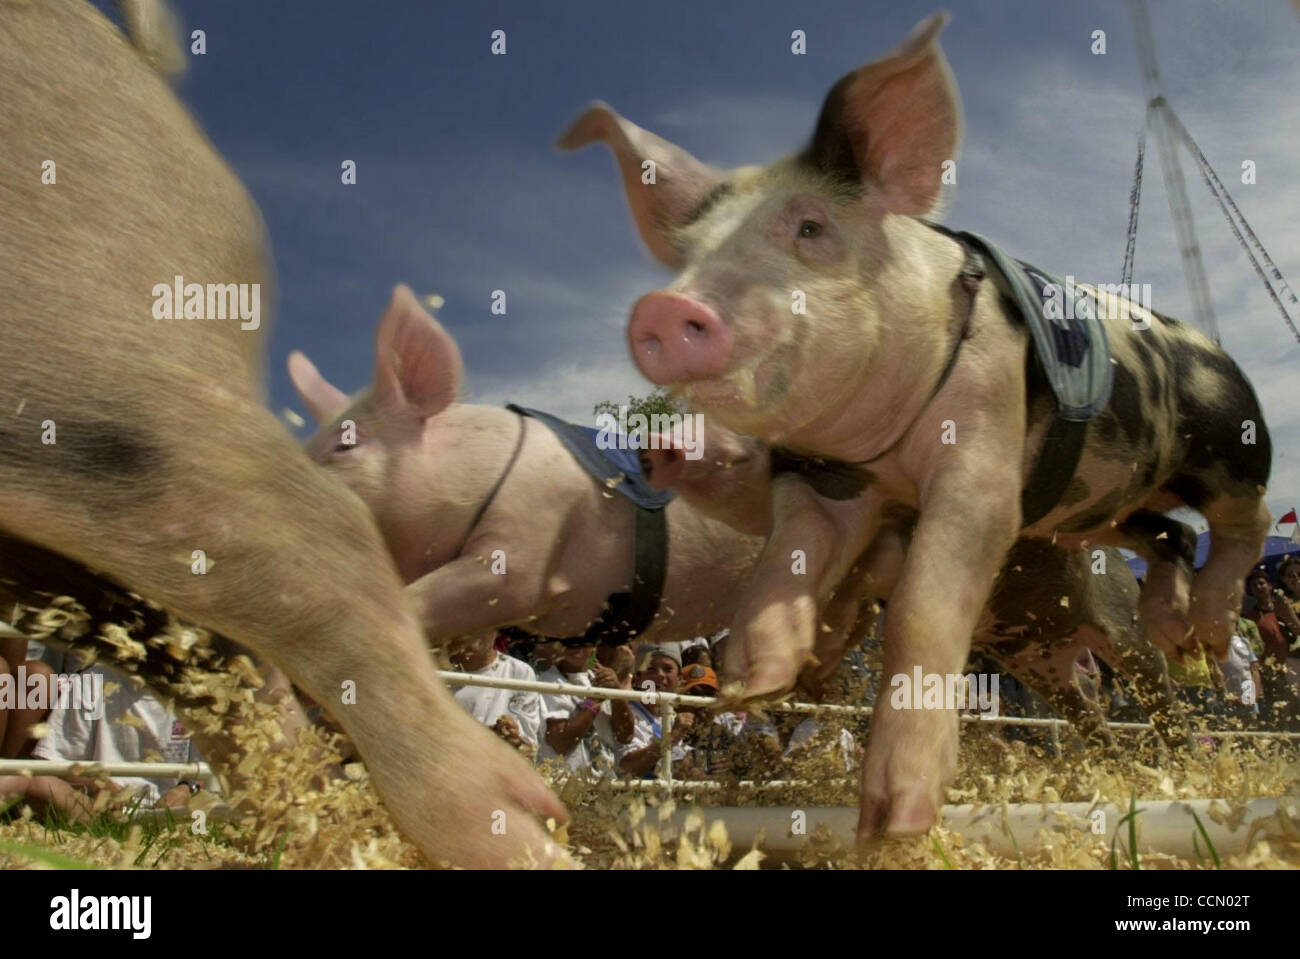 A group of pigs jump over a hurdle that has been knocked down at the 'All-Alaskan Racing Pigs' races held - Stock Image